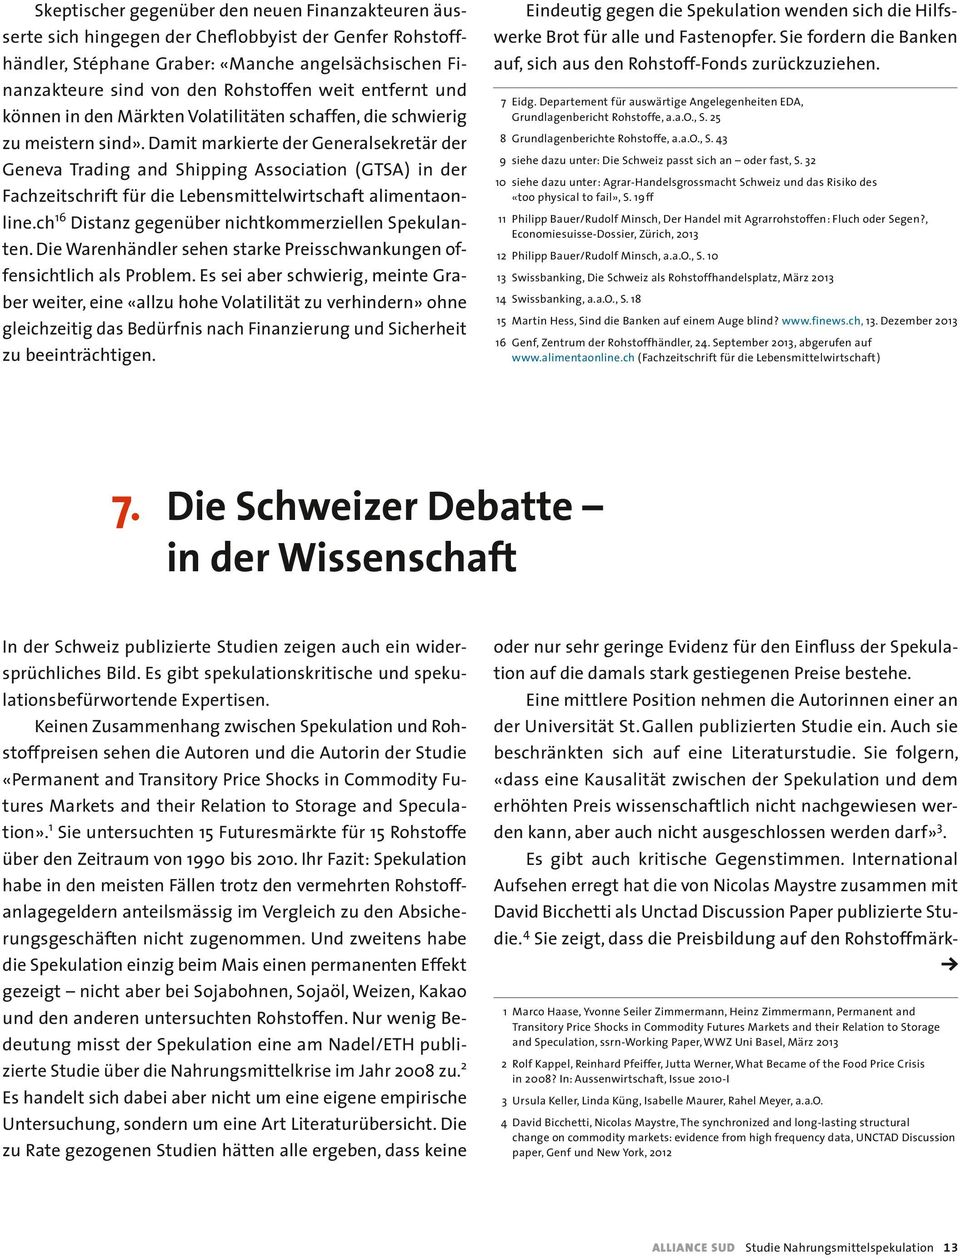 Damit markierte der Generalsekretär der Geneva Trading and Shipping Association ( GTSA ) in der Fachzeitschrift für die Lebensmittelwirtschaft alimentaonline.